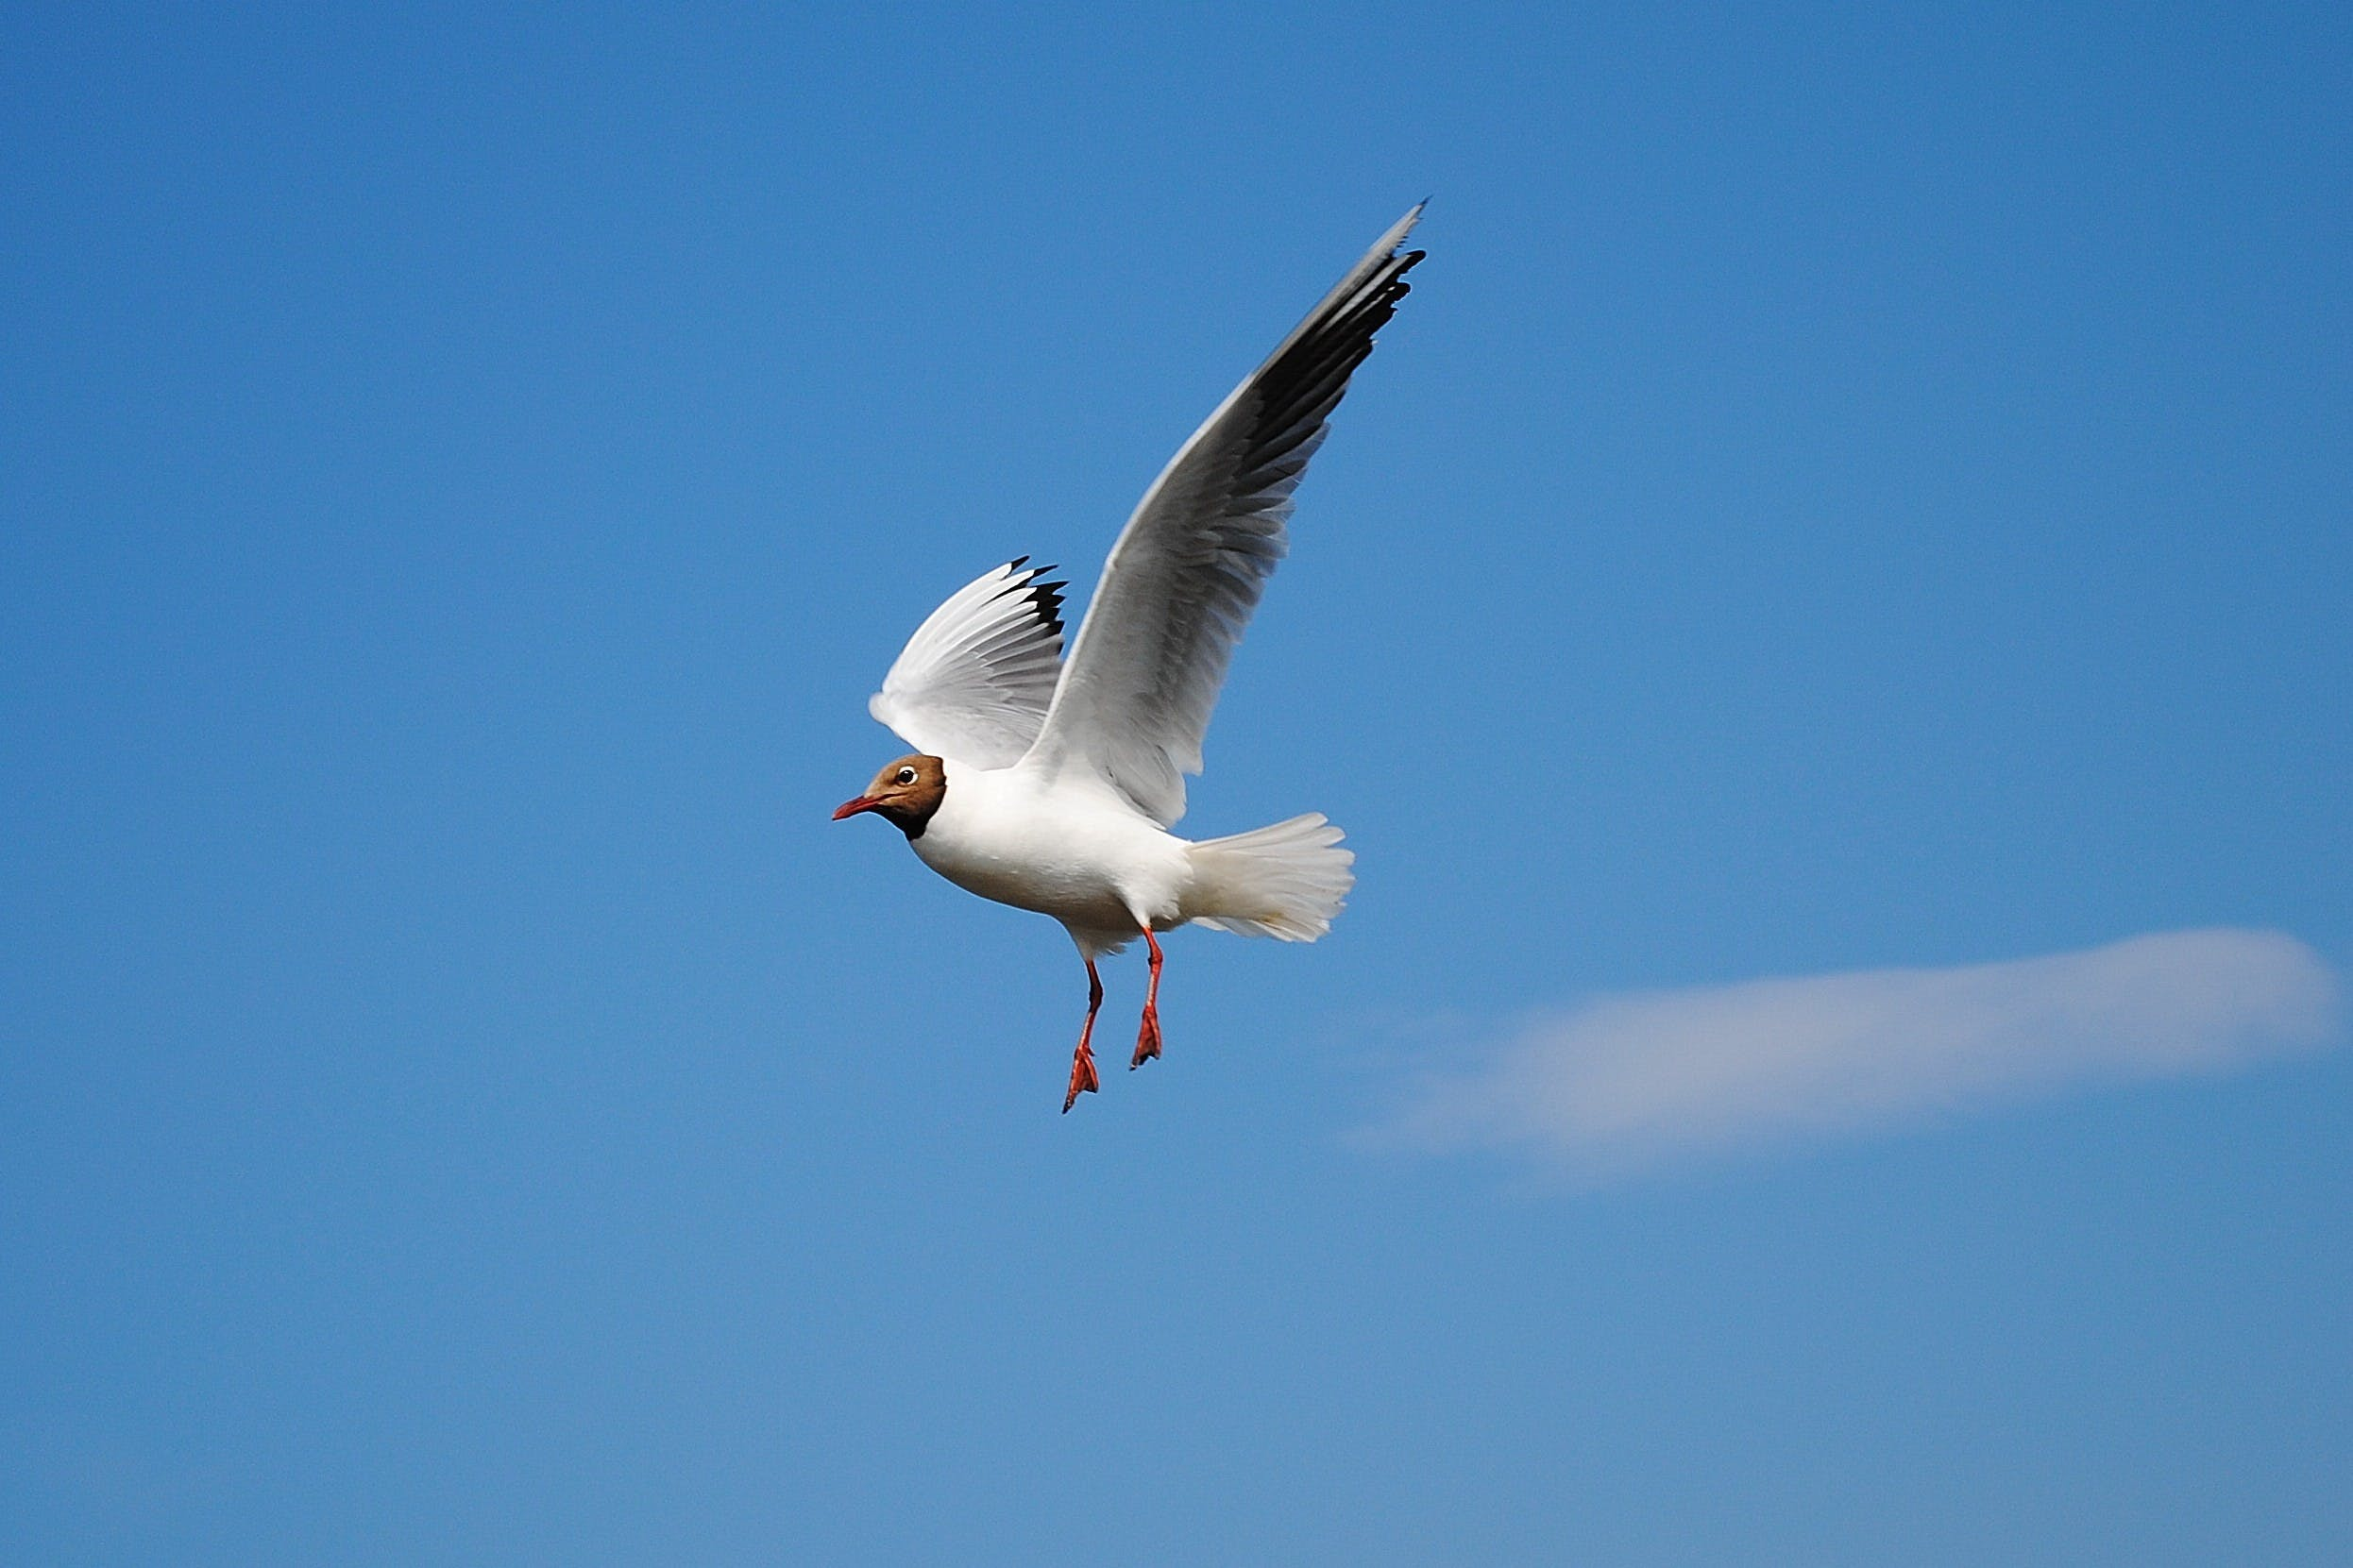 White Bird Flying Above Blue Skies during Daytime